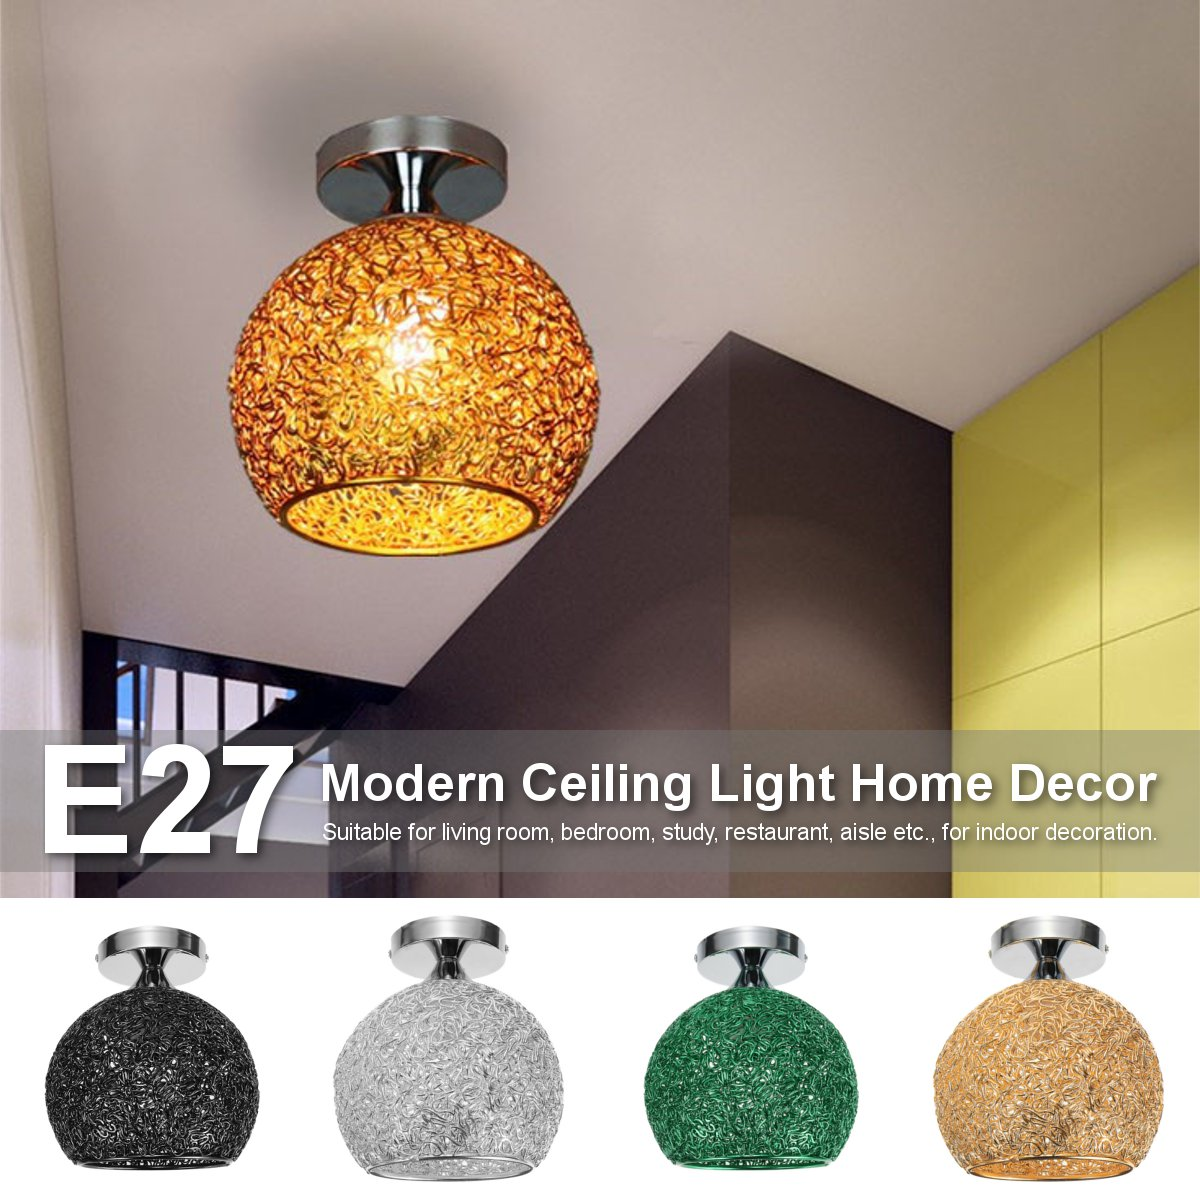 4 Colors E27 Modern Ceiling Light 100-240V Nordic Ceiling Lamp Hallway Bedroom Home Bar Decoration Indoor Lighting Fixture